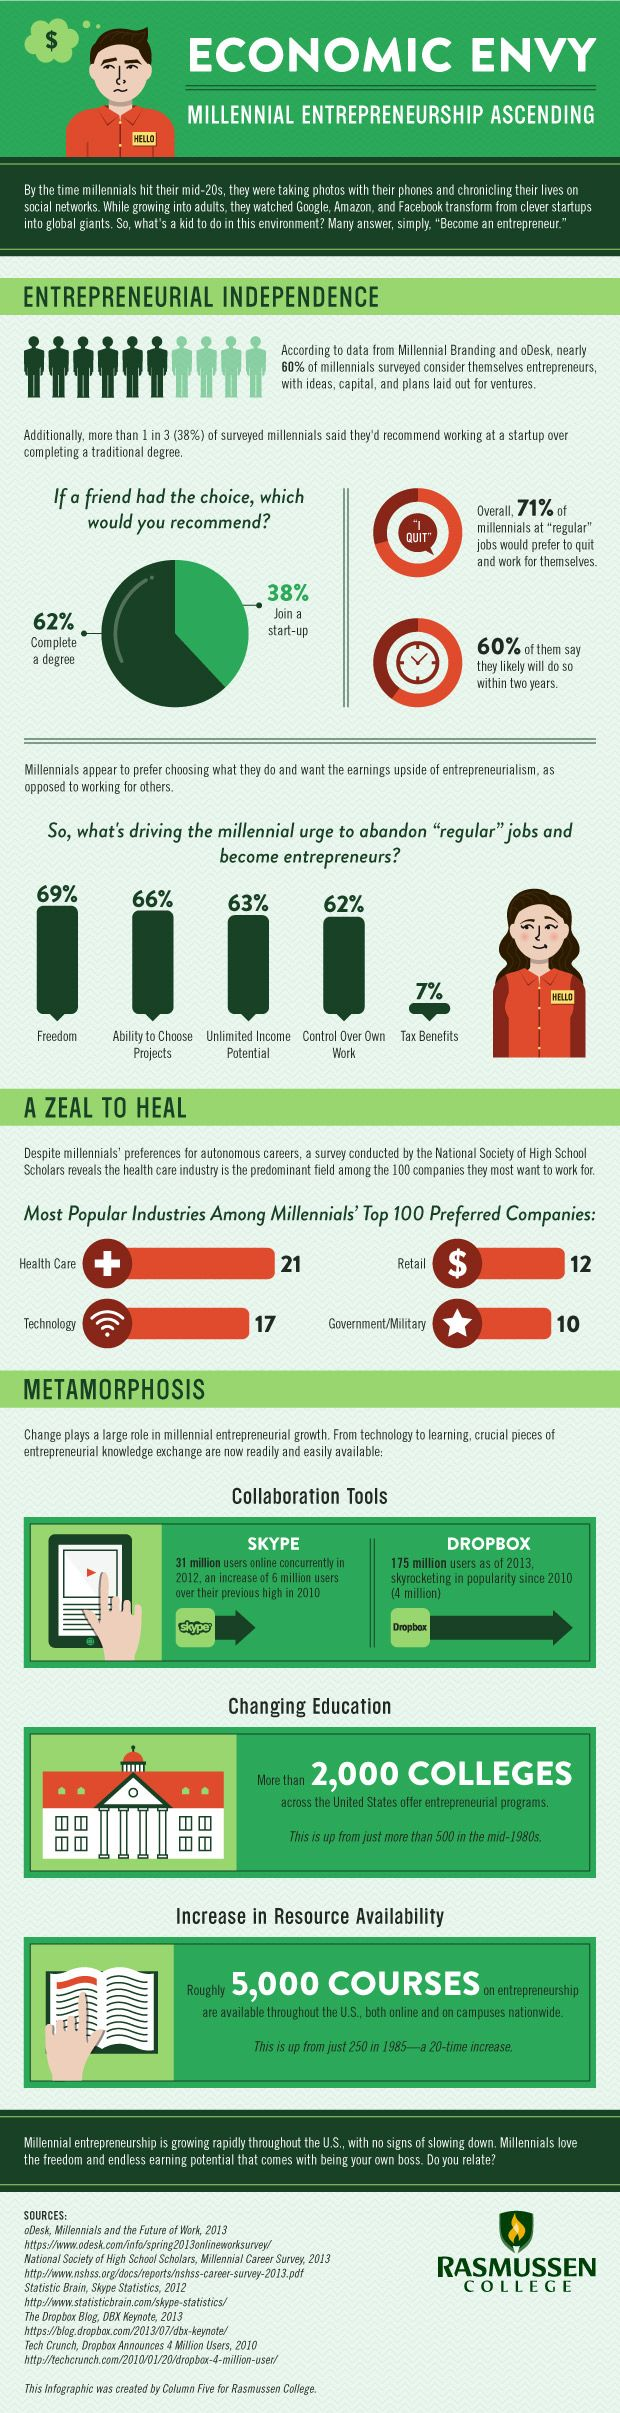 Millennials Are Snubbing the Corporate World for Entrepreneurship (Infographic)